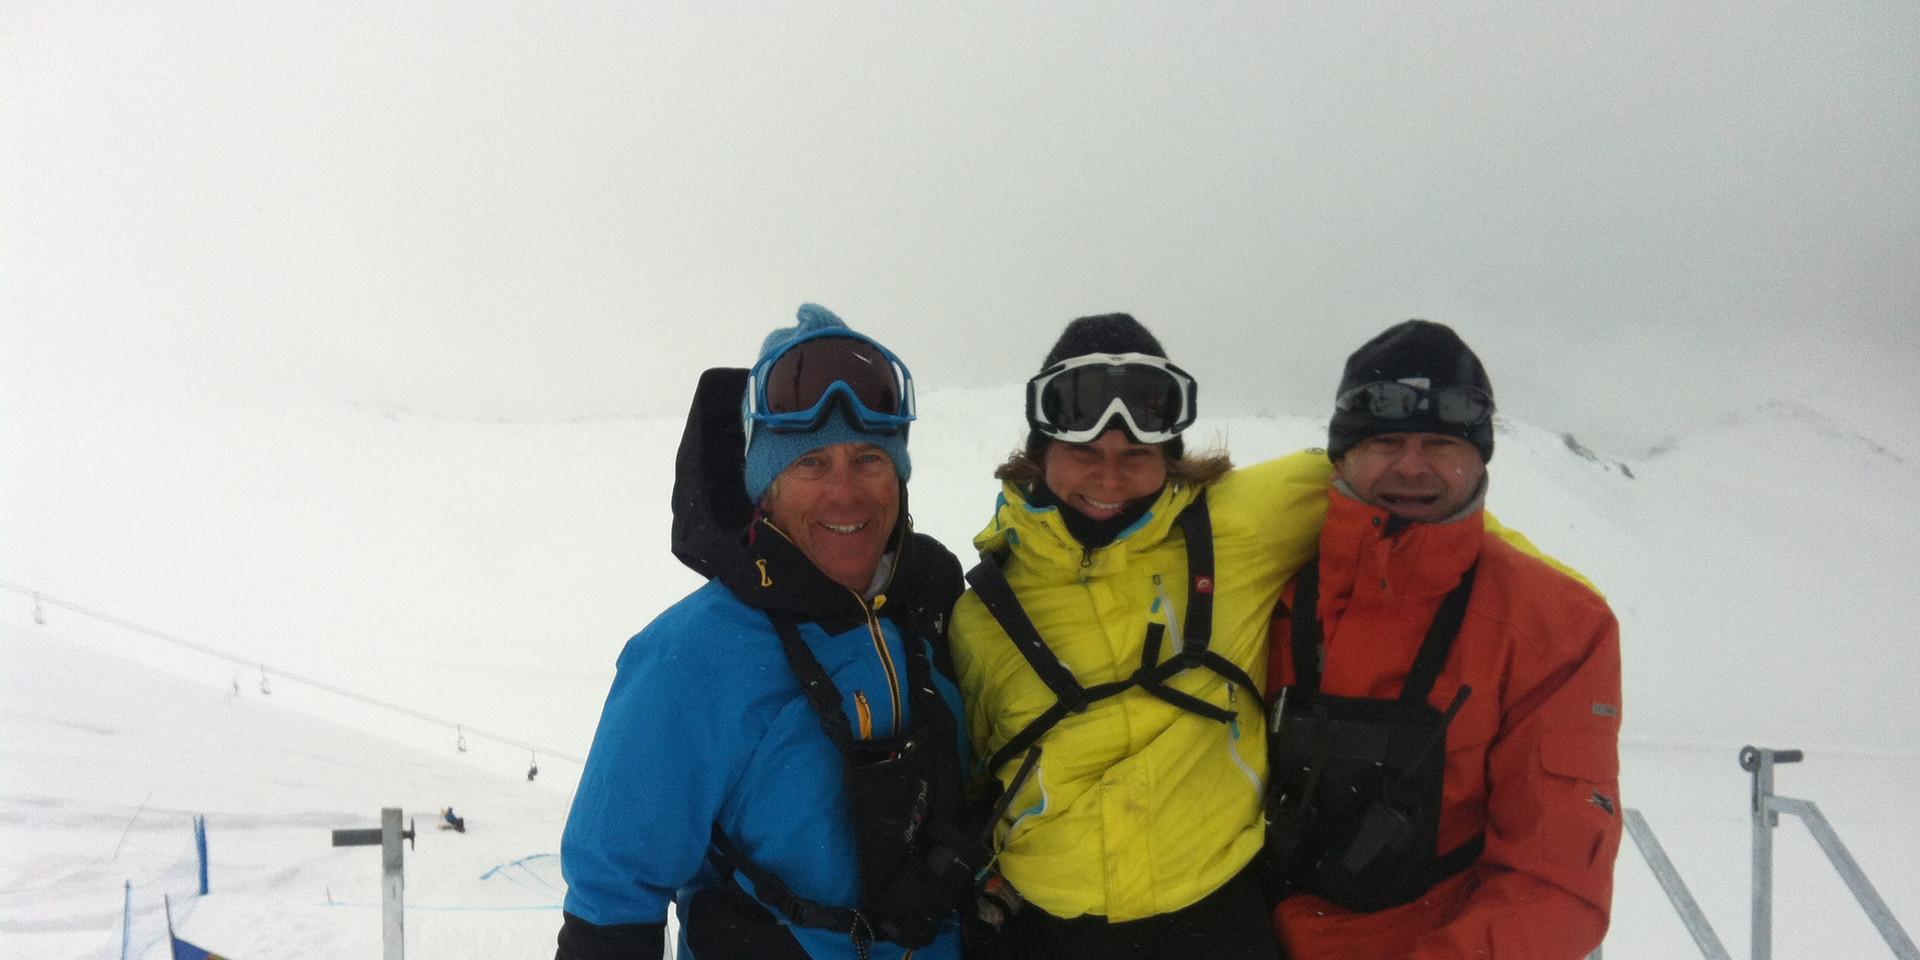 Working for the Snowboard South American Continental Cups Organizing Committee